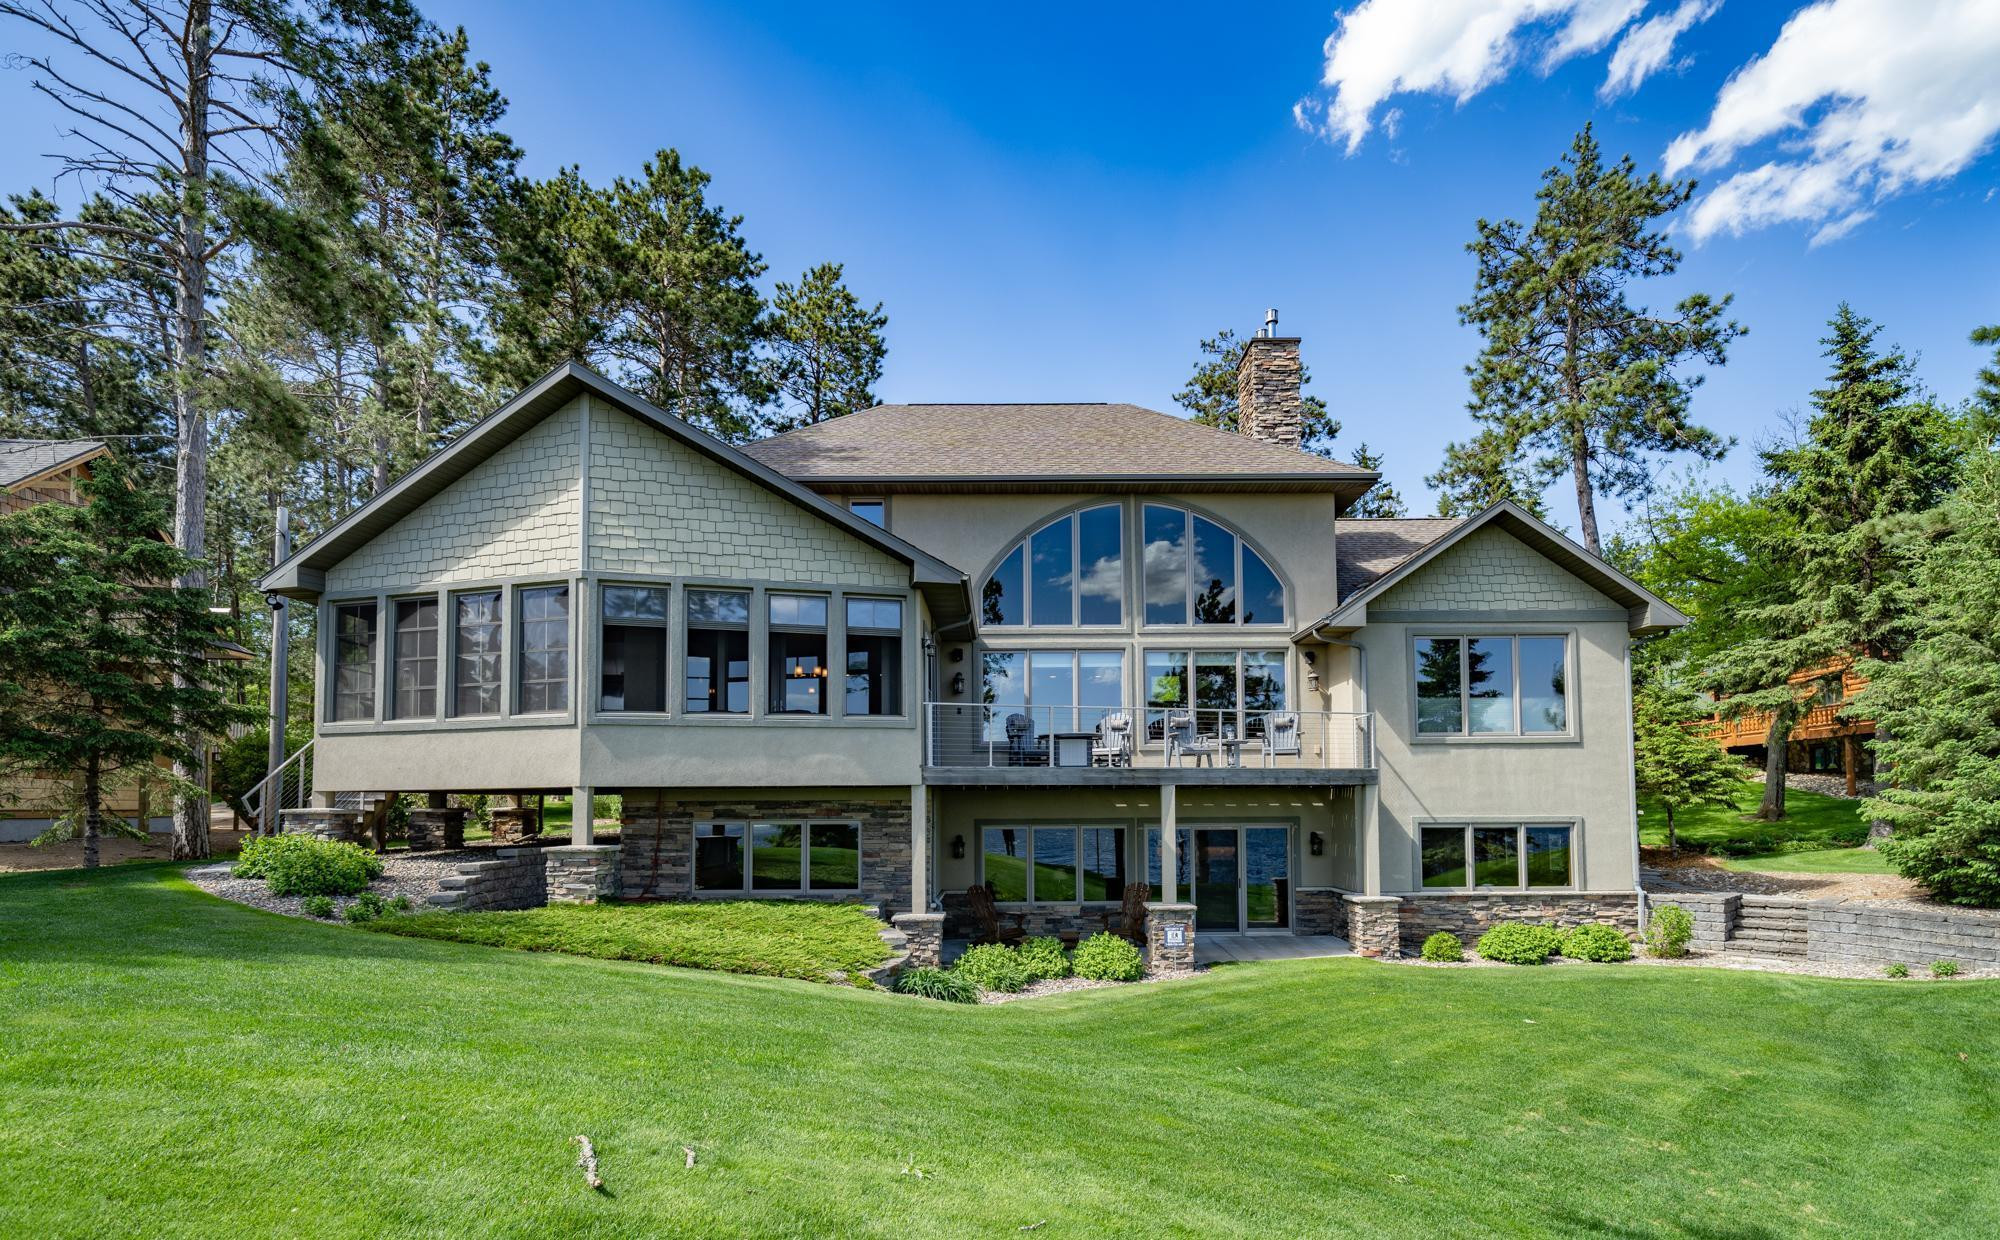 38641 Eagles View Road, Pine River, MN 56474